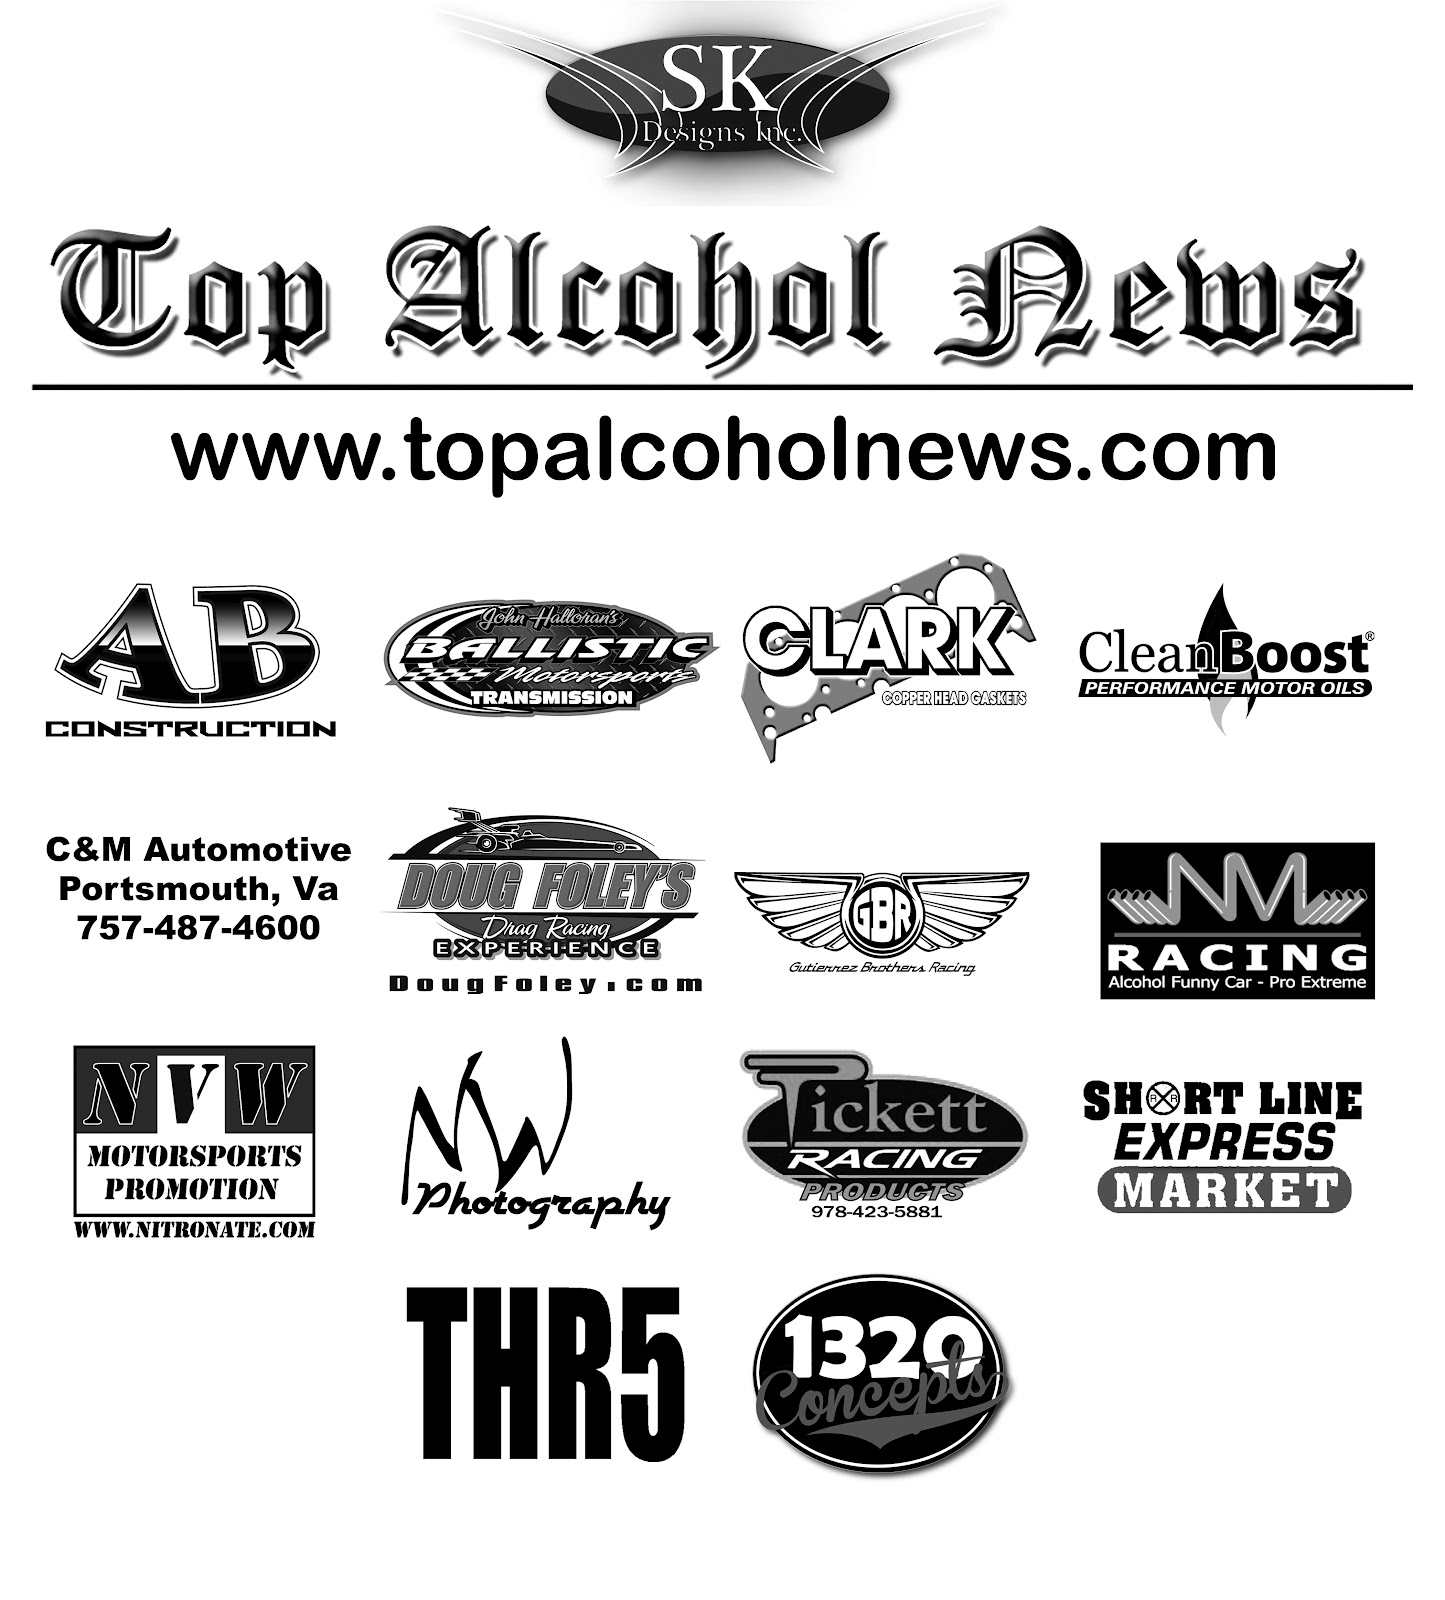 Top Alcohol News March